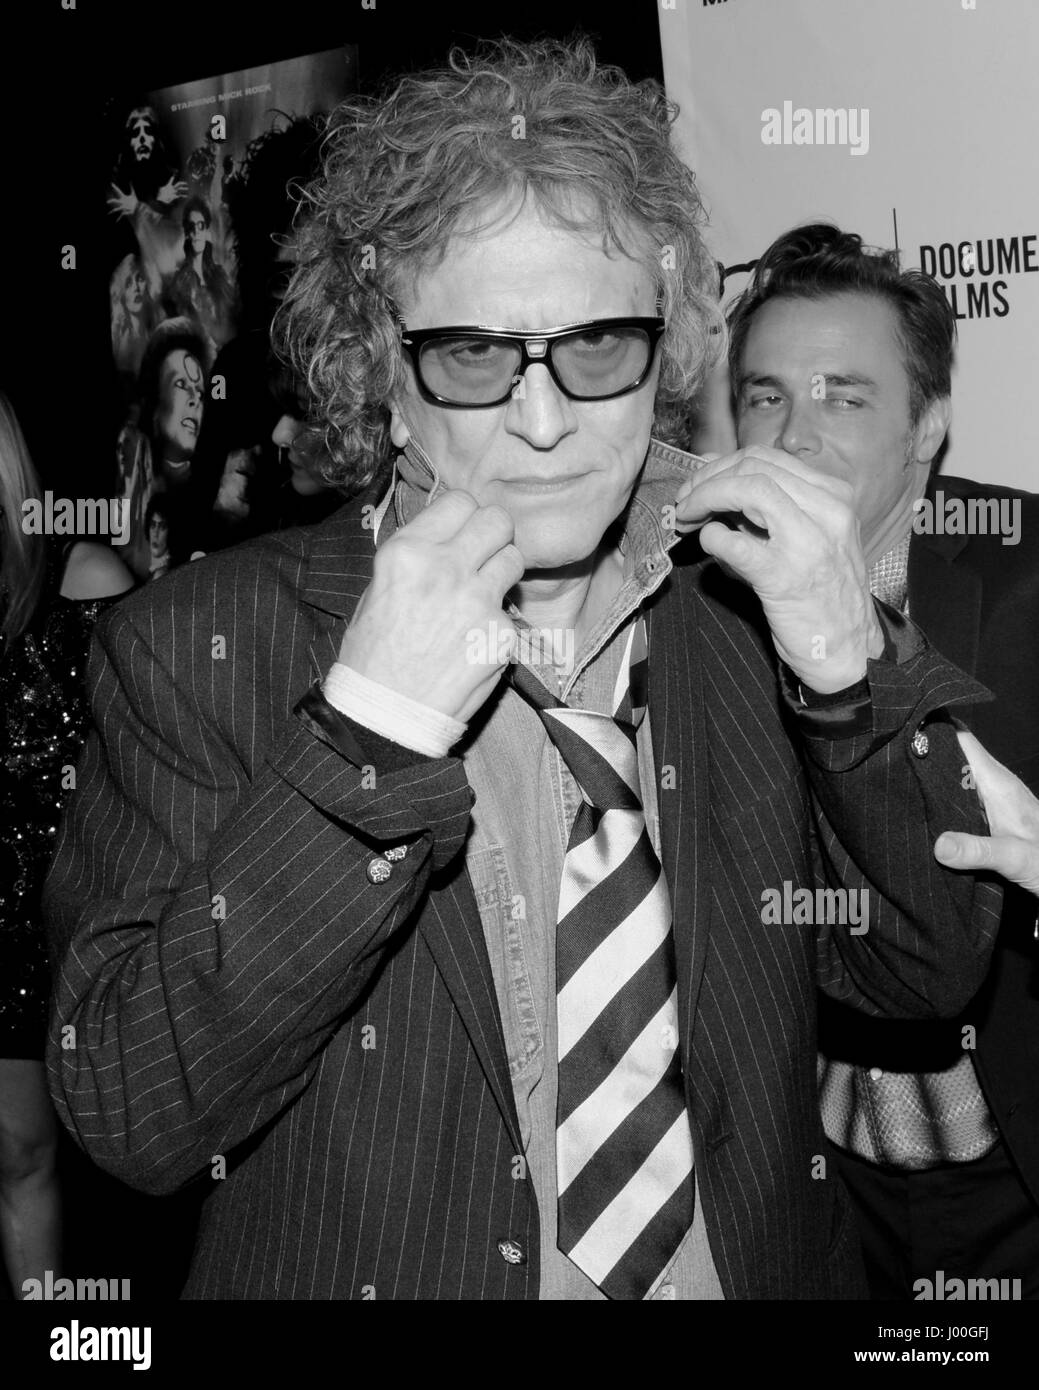 Mick Rock arrive for the Premiere Of 'SHOT! The Psycho-Spiritual Mantra of Rock' held at Pacific Theatres - Stock Image